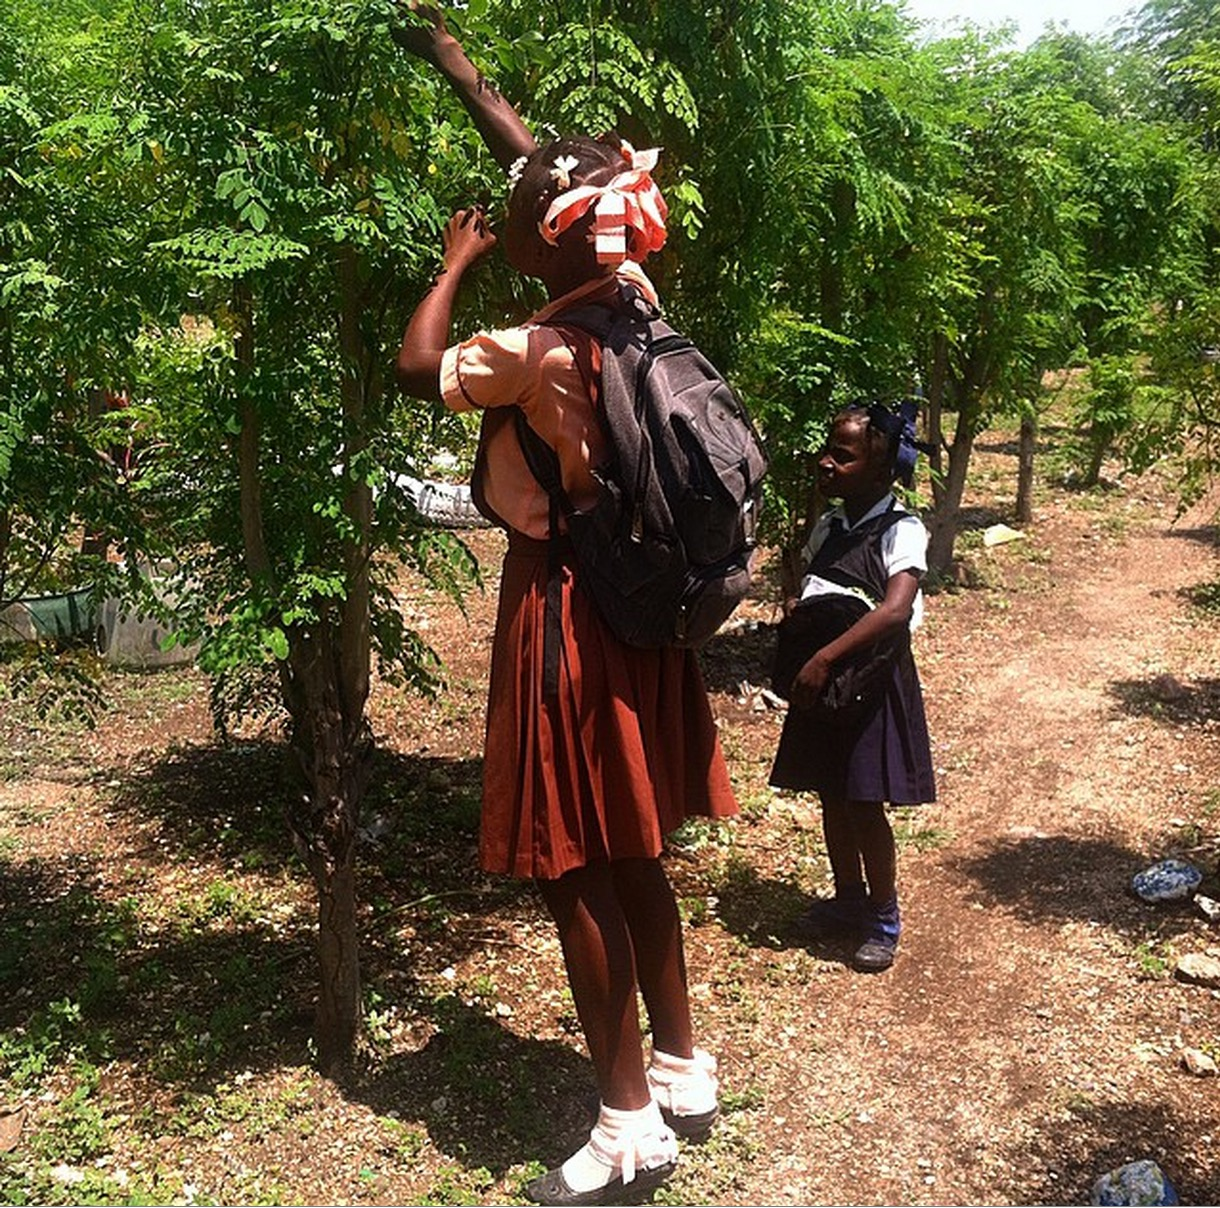 The Moringa tree is used for food, shade, fencing, and more